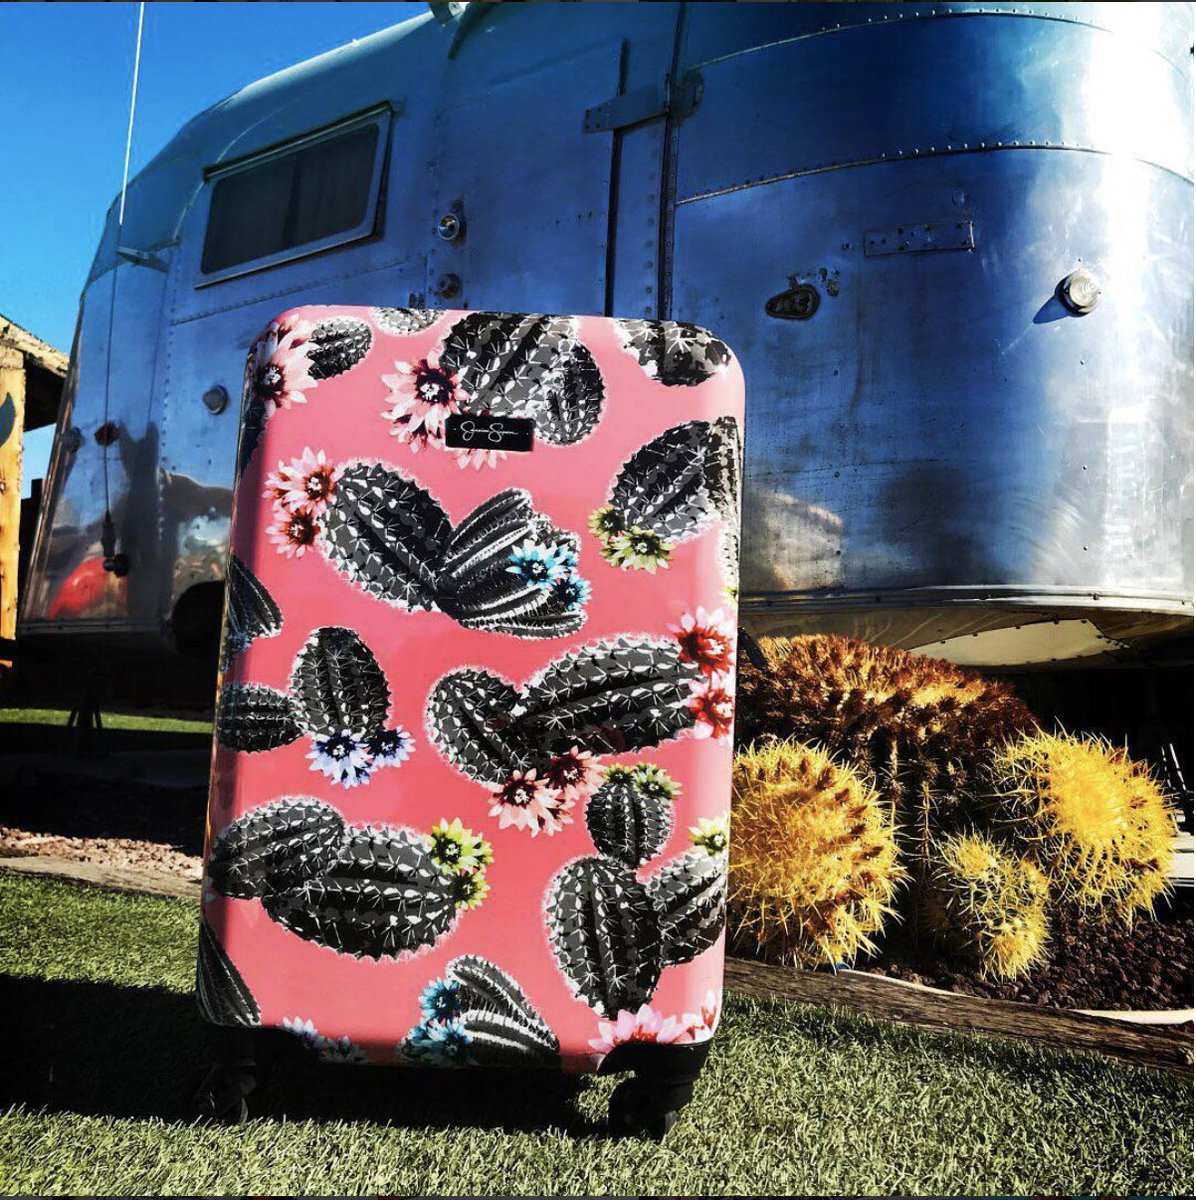 Loving this cactus luggage from @JSCollection  #JessicaSimpsonLuggage  https://t.co/NKx5prP3Gu https://t.co/Mwsdk96Qnl